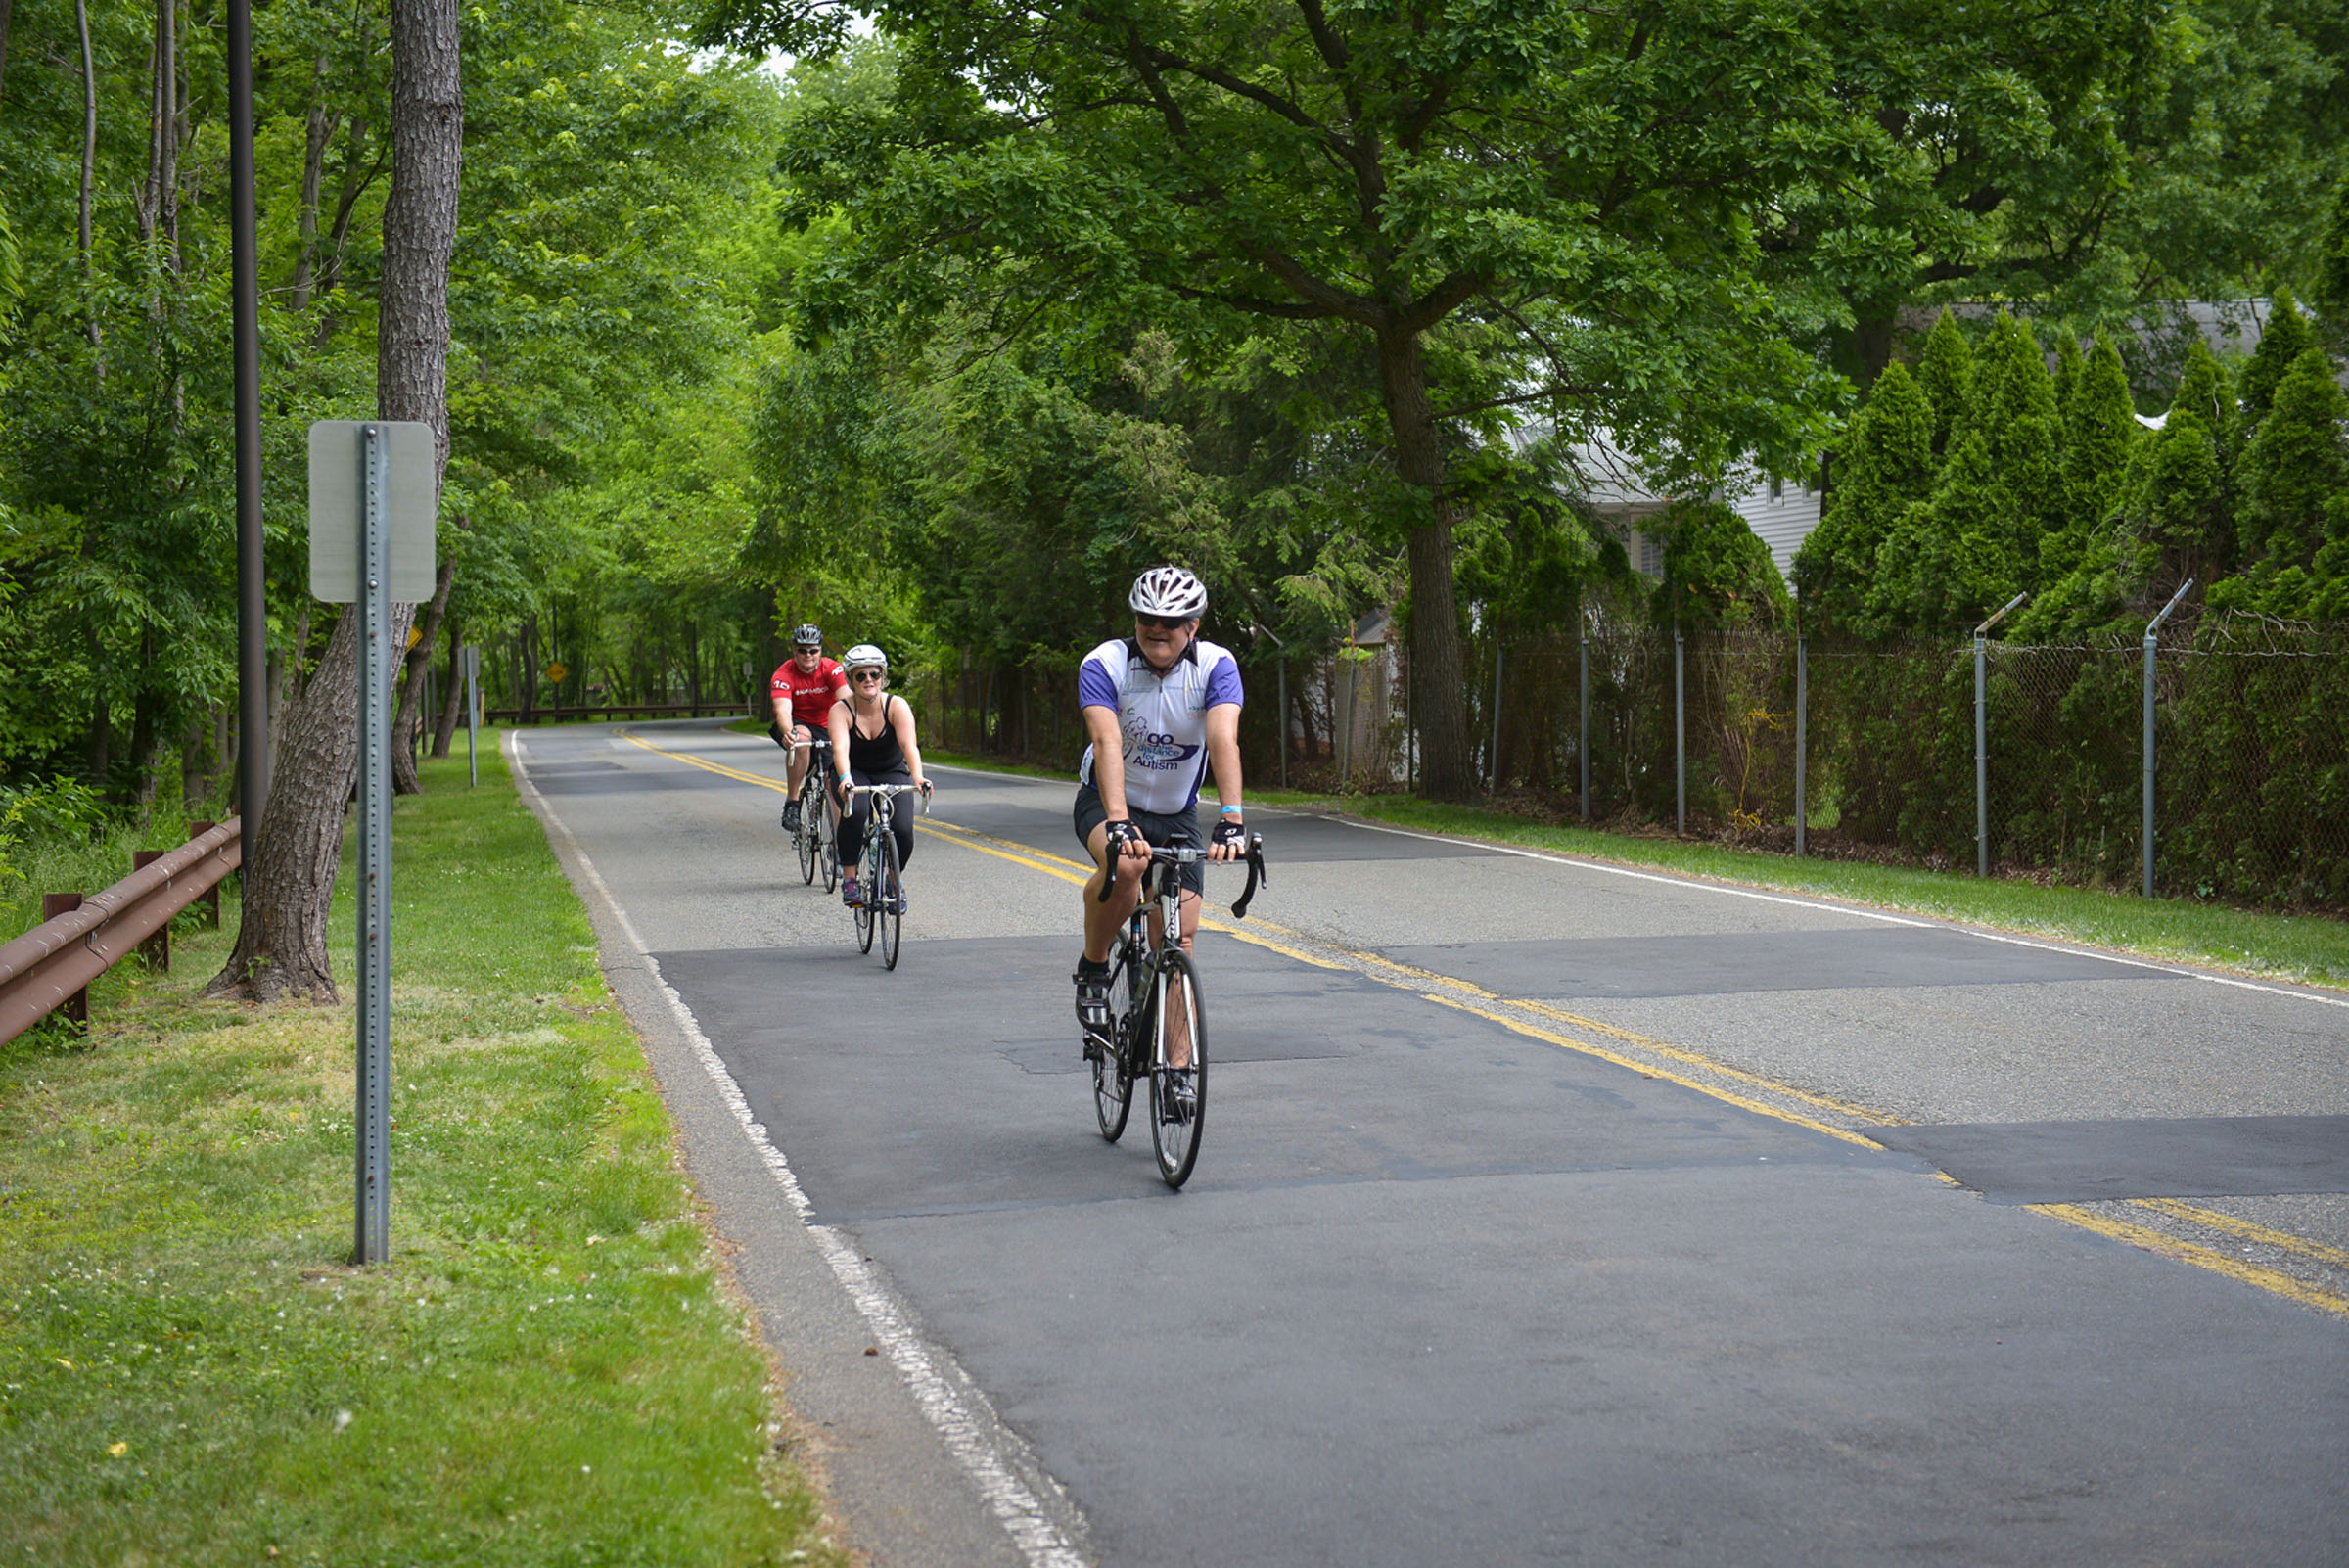 2017-06-04 GTD4A Charity Bike Ride - BCC - Paramus NJ-2386.jpg